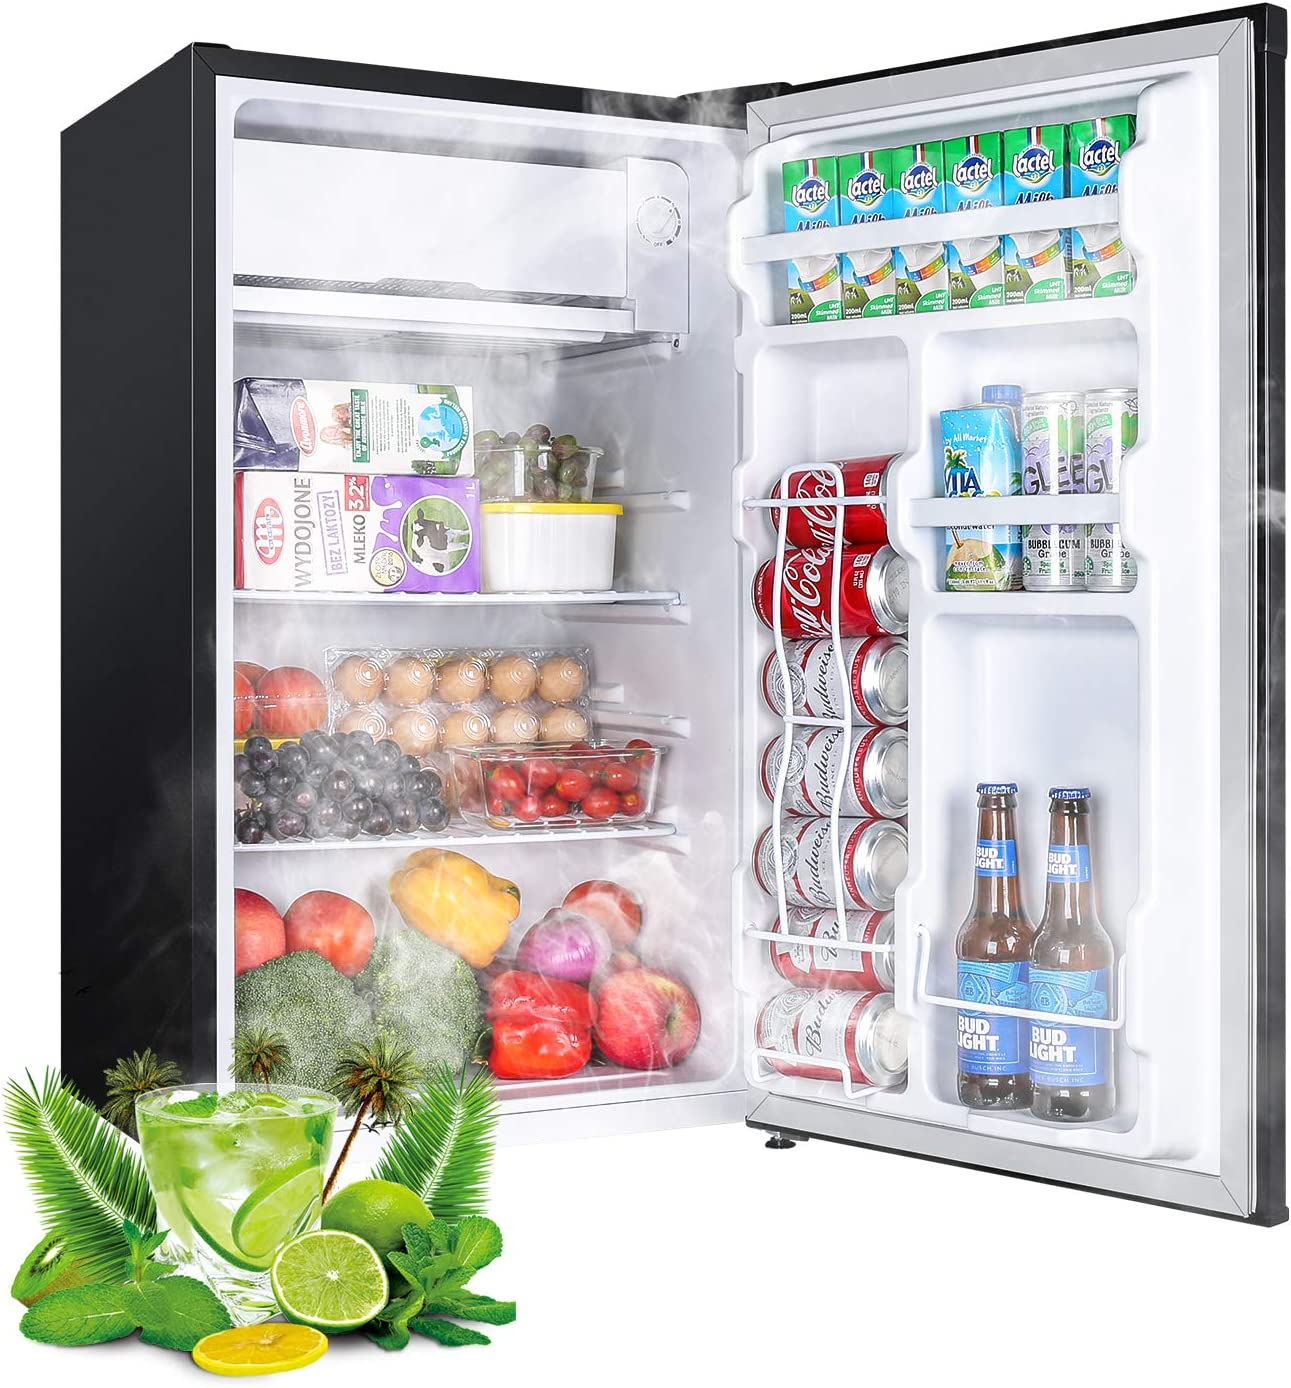 Compact Refrigerator, TECCPO 3.2 Cu.Ft, Energy Star Reversible Door Mini Fridge with Freezer, 35 dB, Adjustable Thermostat, Slide Out Shelves, Suitable for Office, Dorm Room, Kitchen or Playroom, Classic Black - TAMF06